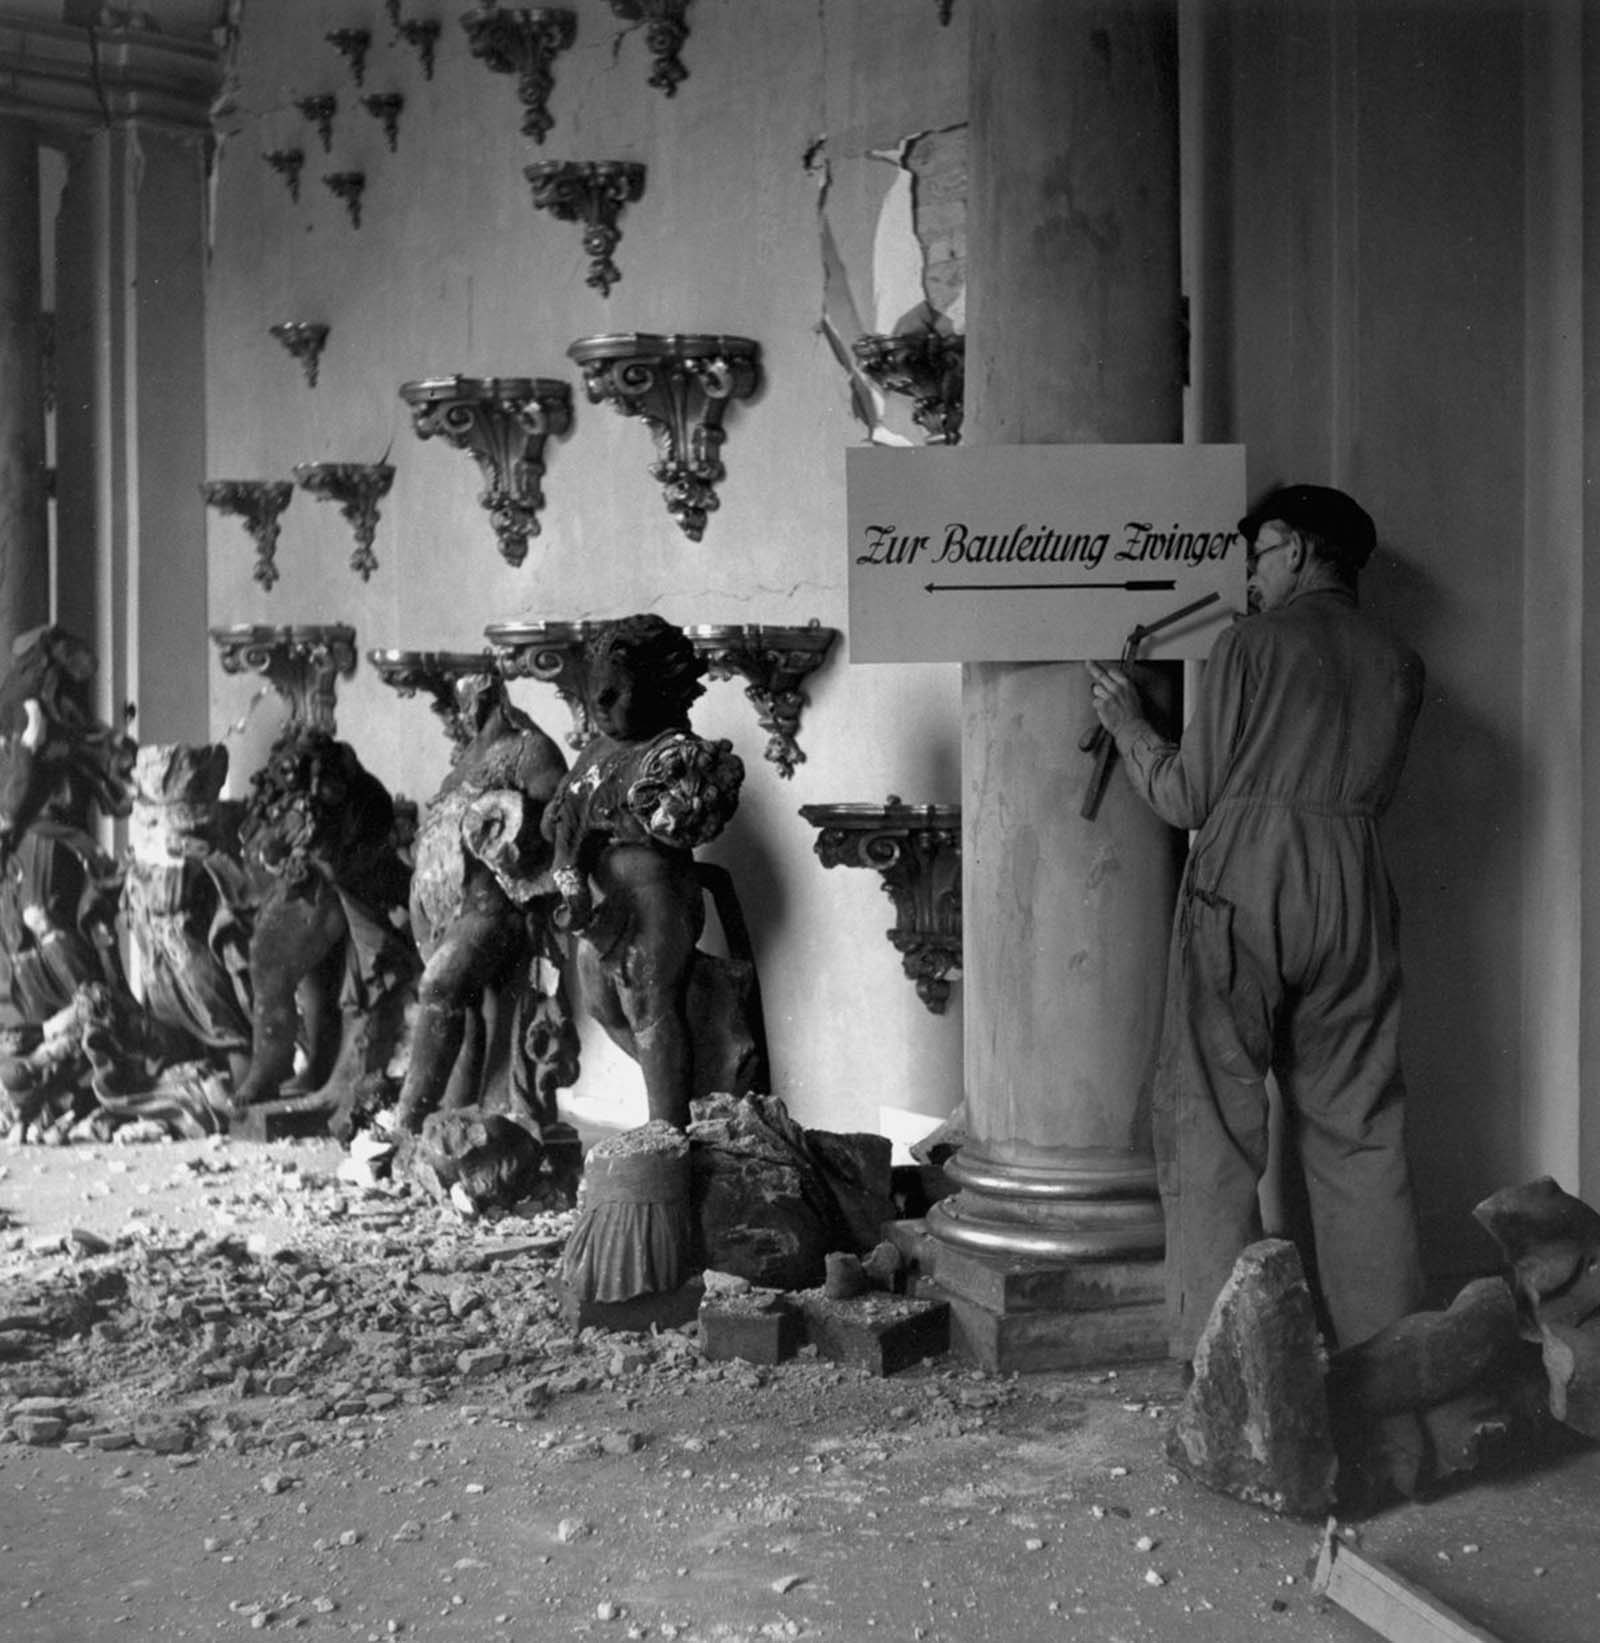 A man works on restoring the Zwinger art gallery. 1946.